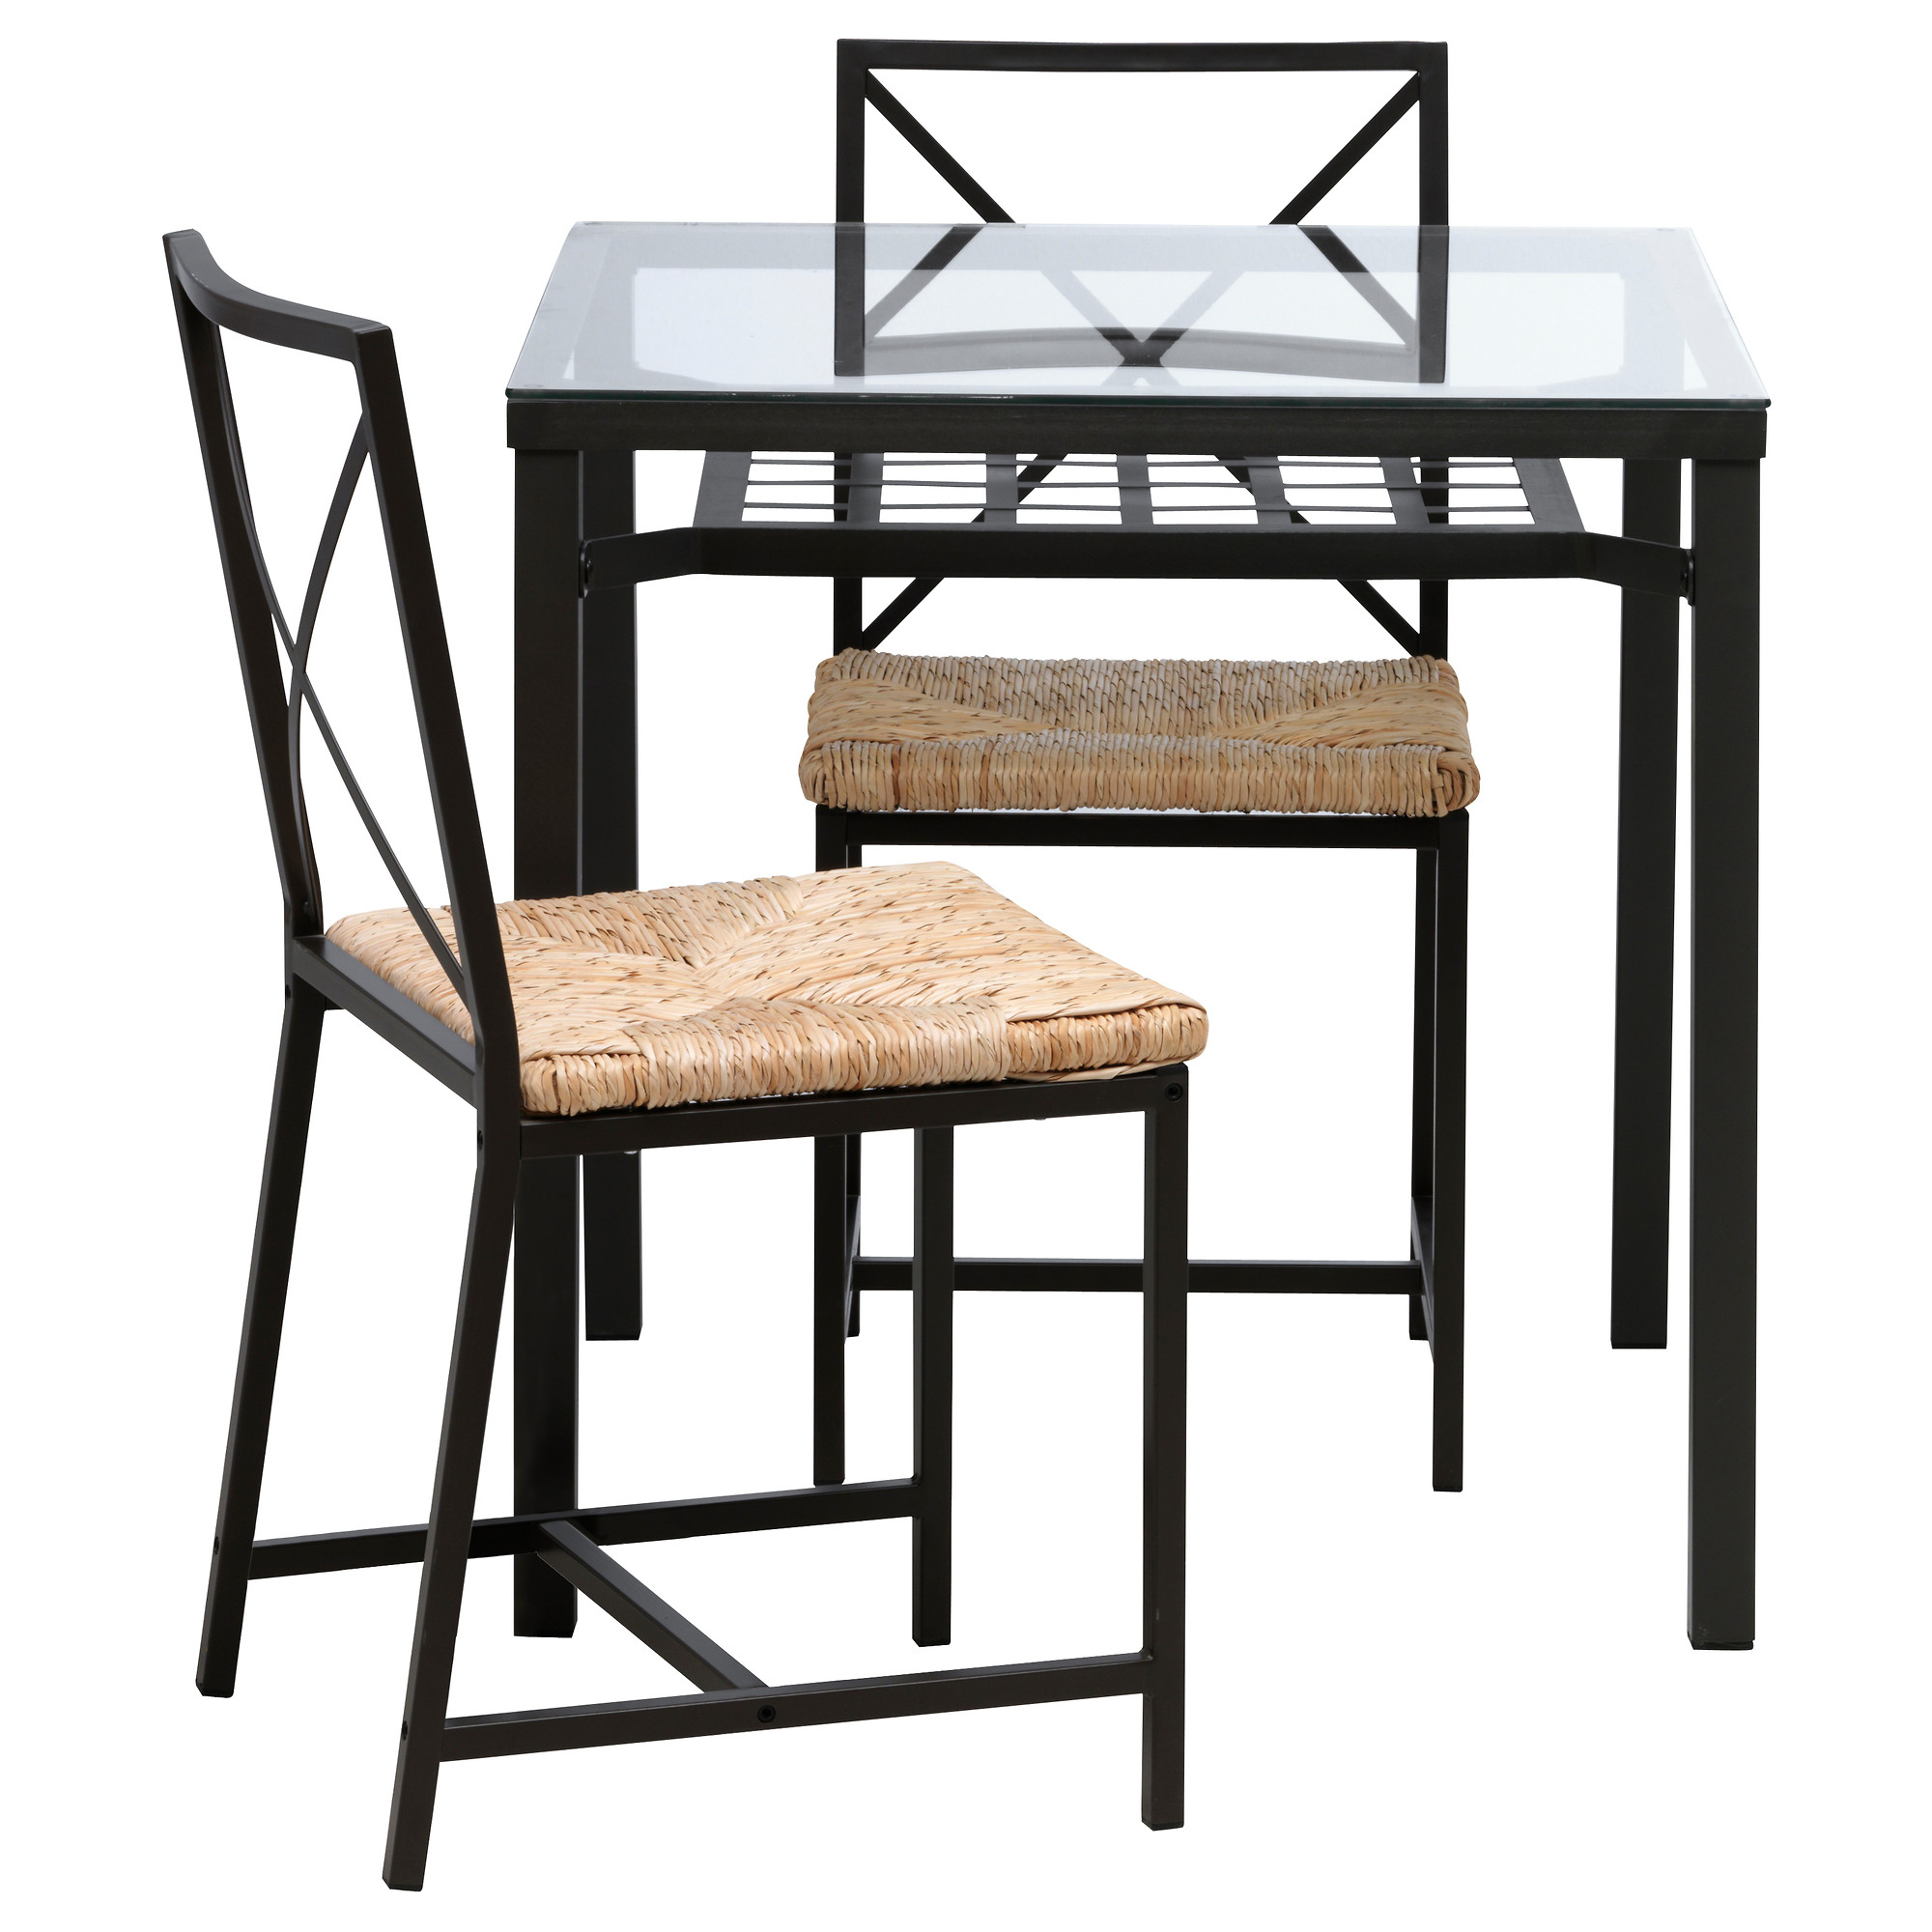 Get a nice spot in your garden or patio by decorating an for Set de table ikea